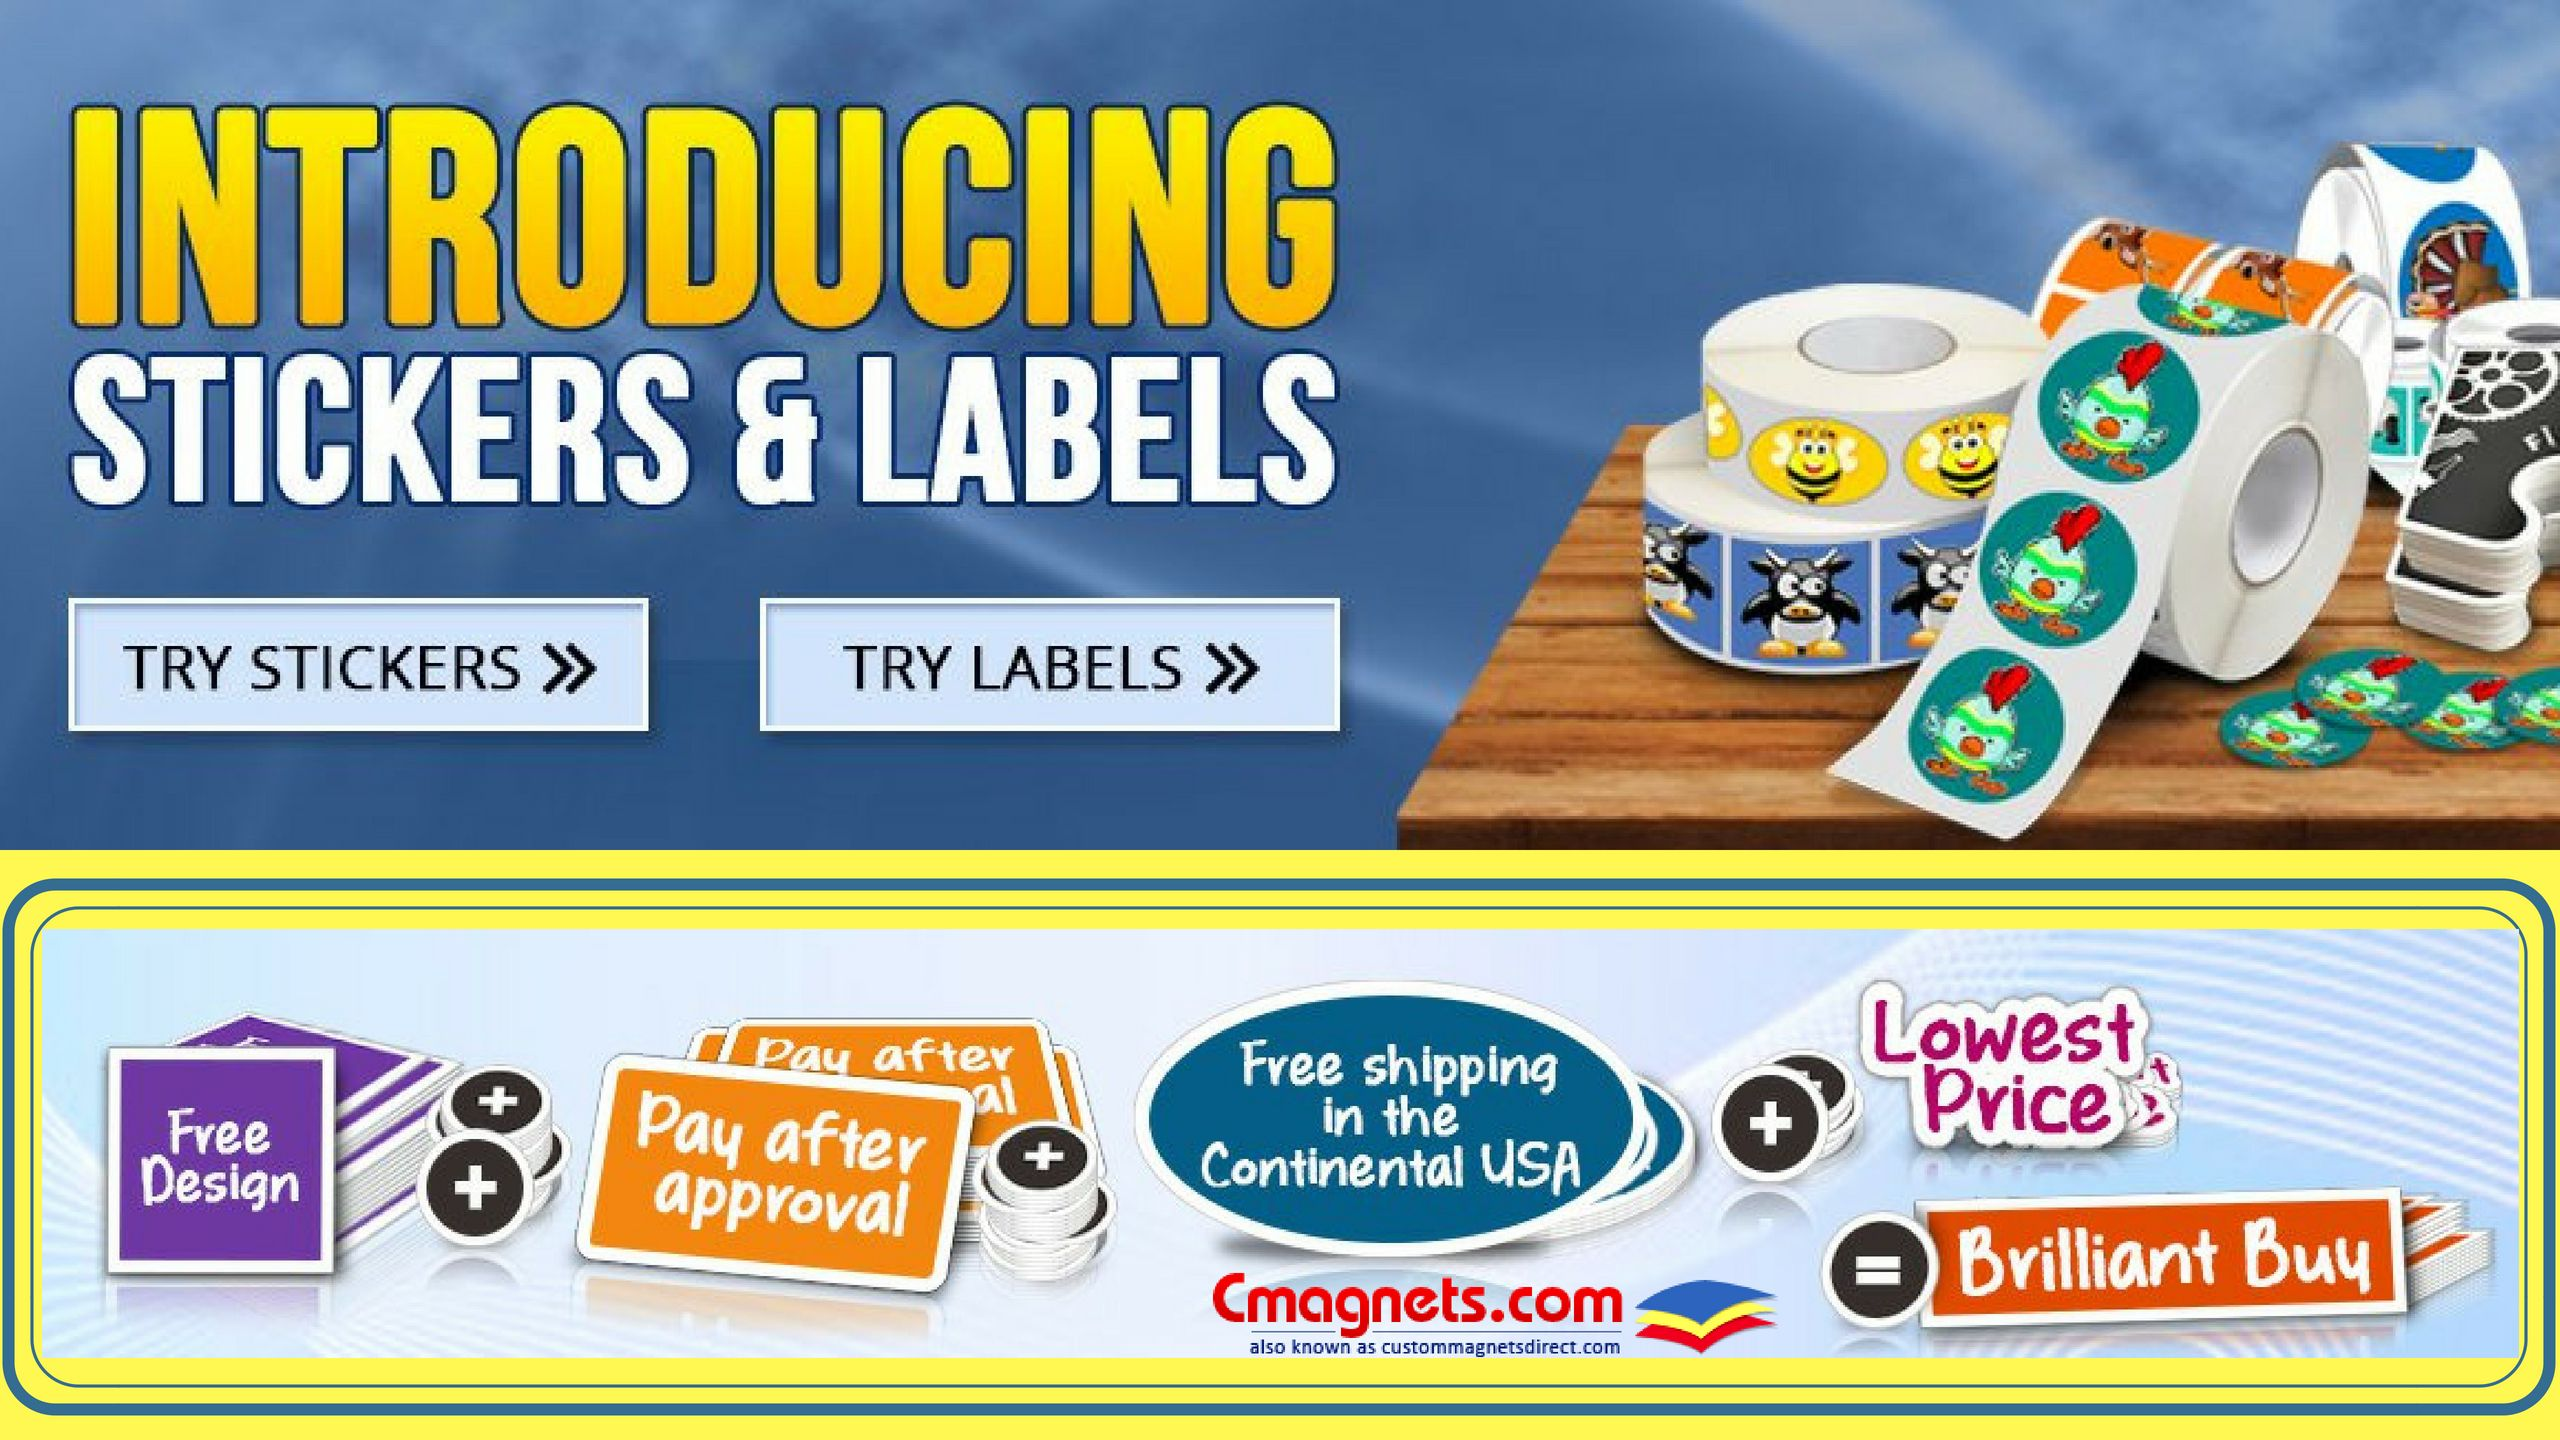 Are you interested to do some logo sticker label marketing choose from our wide range of custom stickers at unbeatable prices and get started